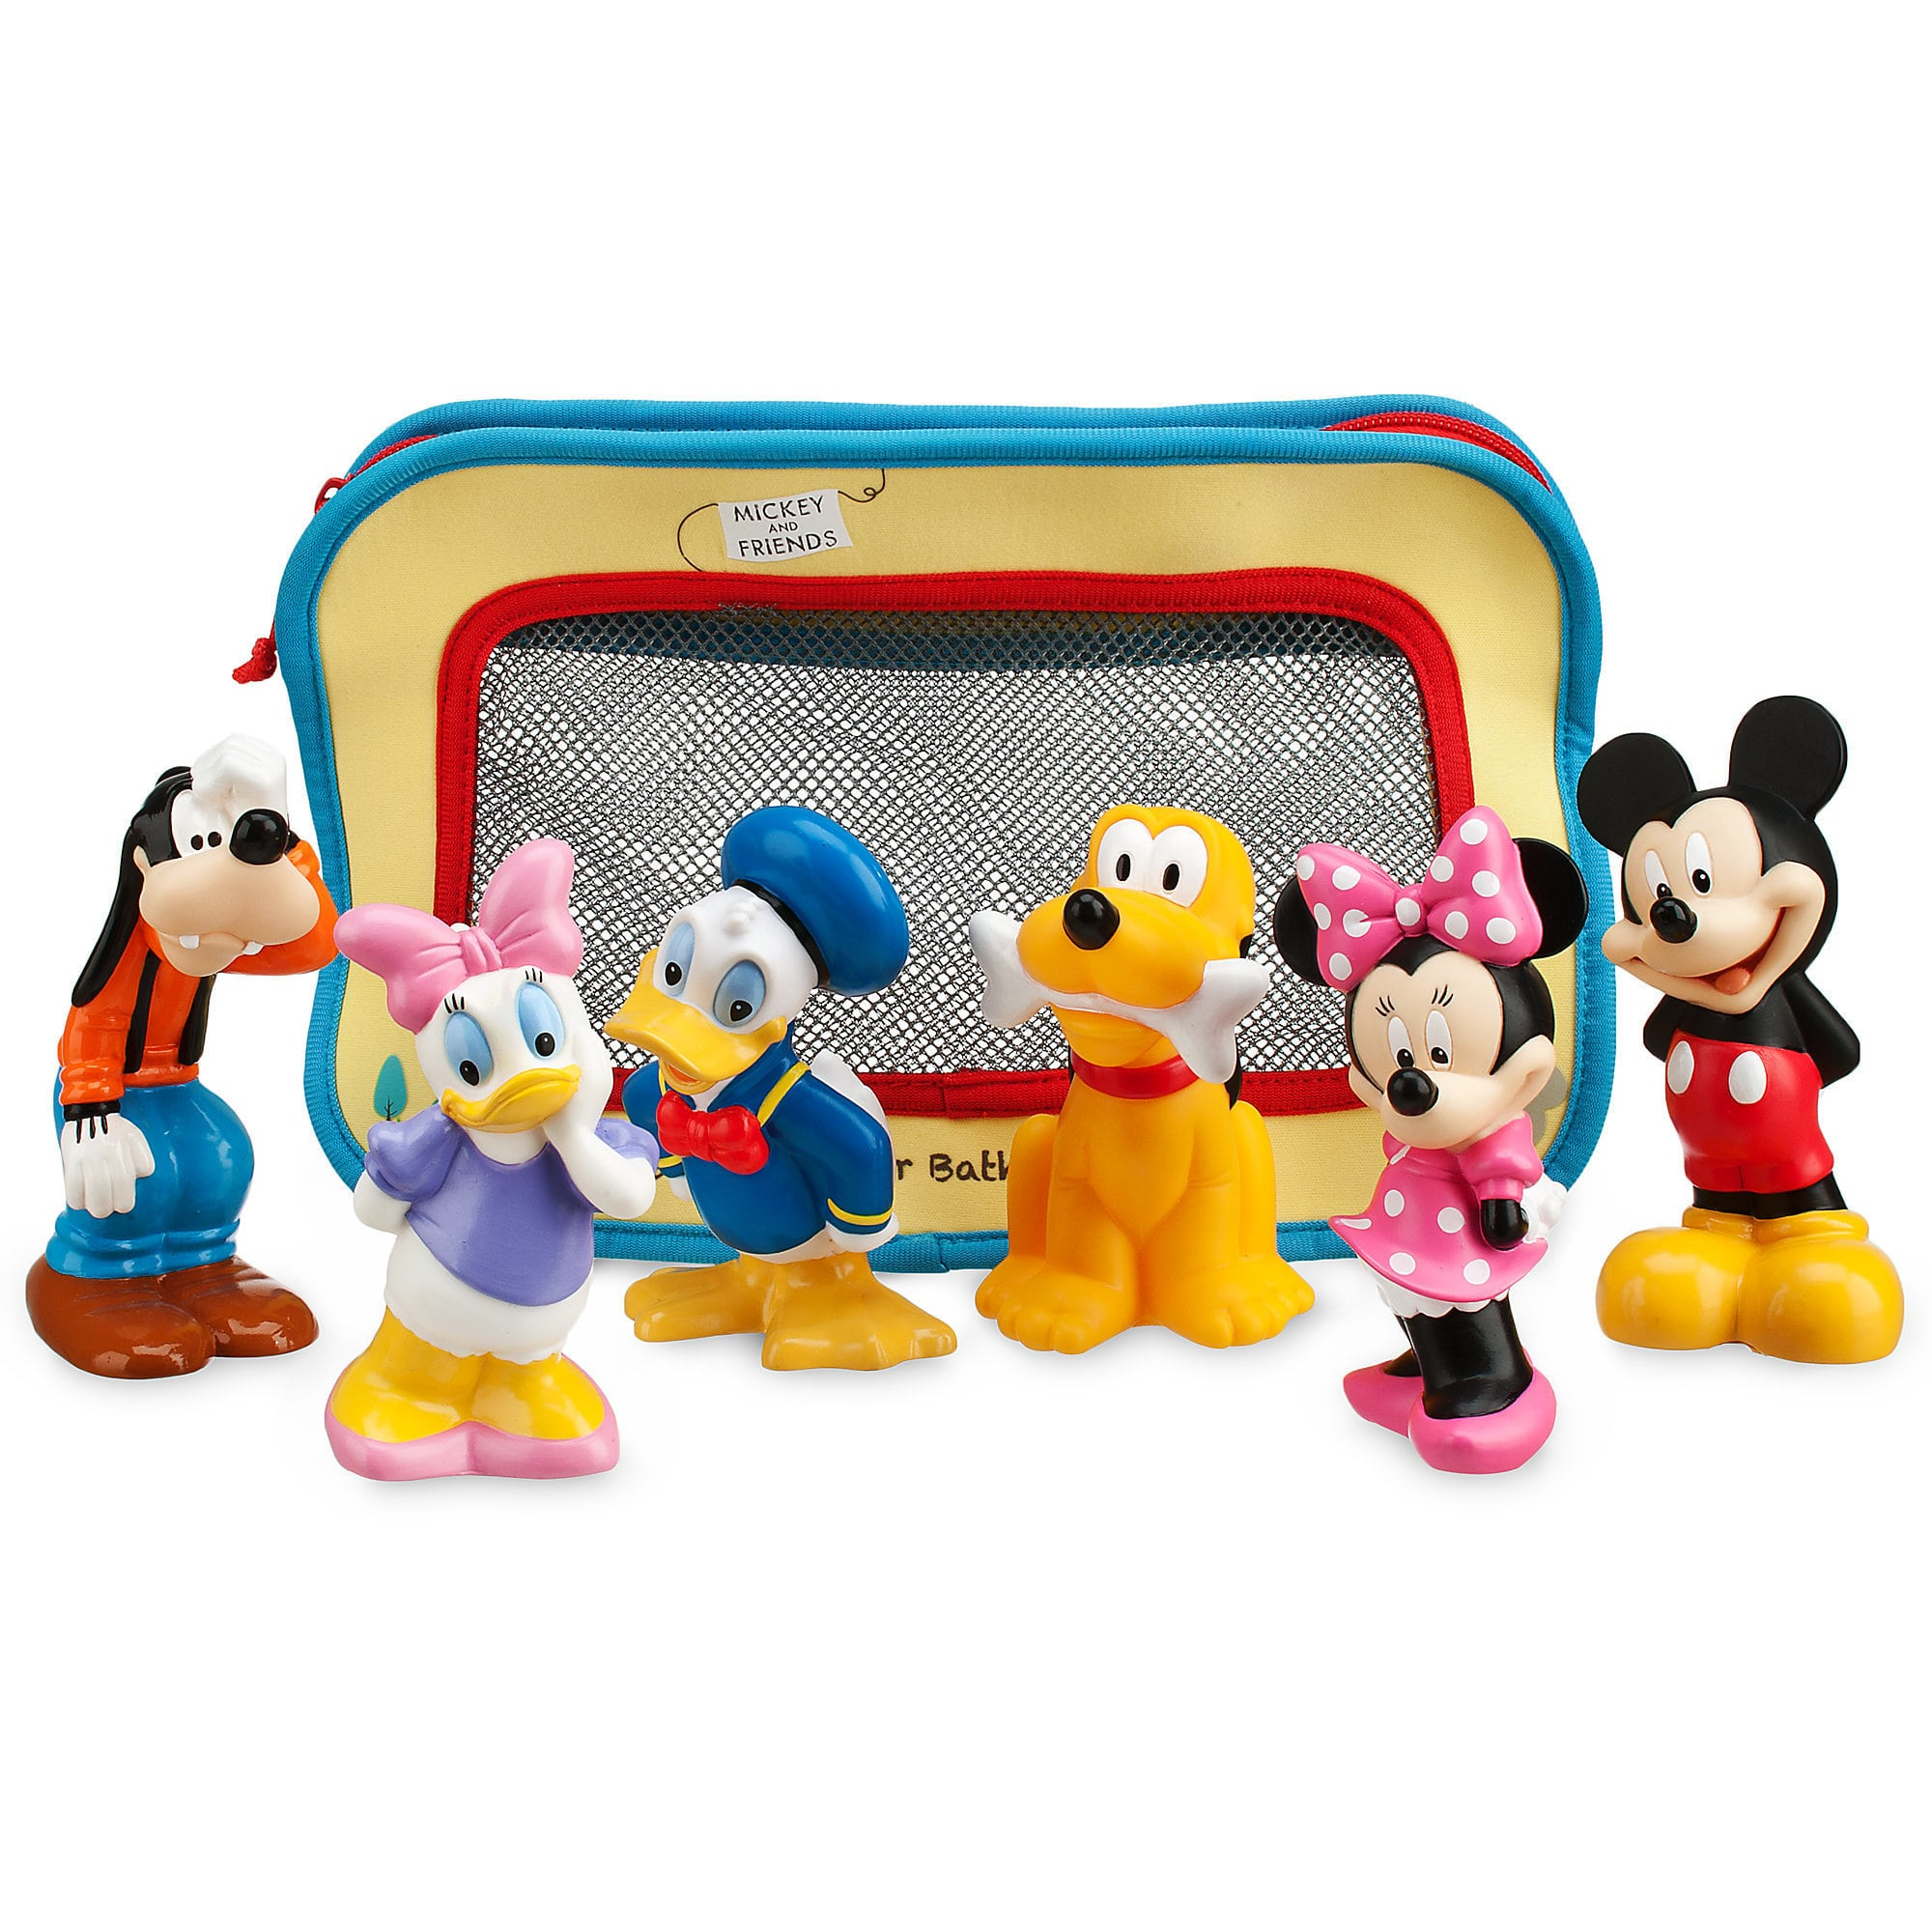 Toddlers and preschoolers will love these Mickey Mouse bath toys | Top 25 Disney Gift Ideas for Toddlers featured by top US Disney blogger, Marcie and the Mouse